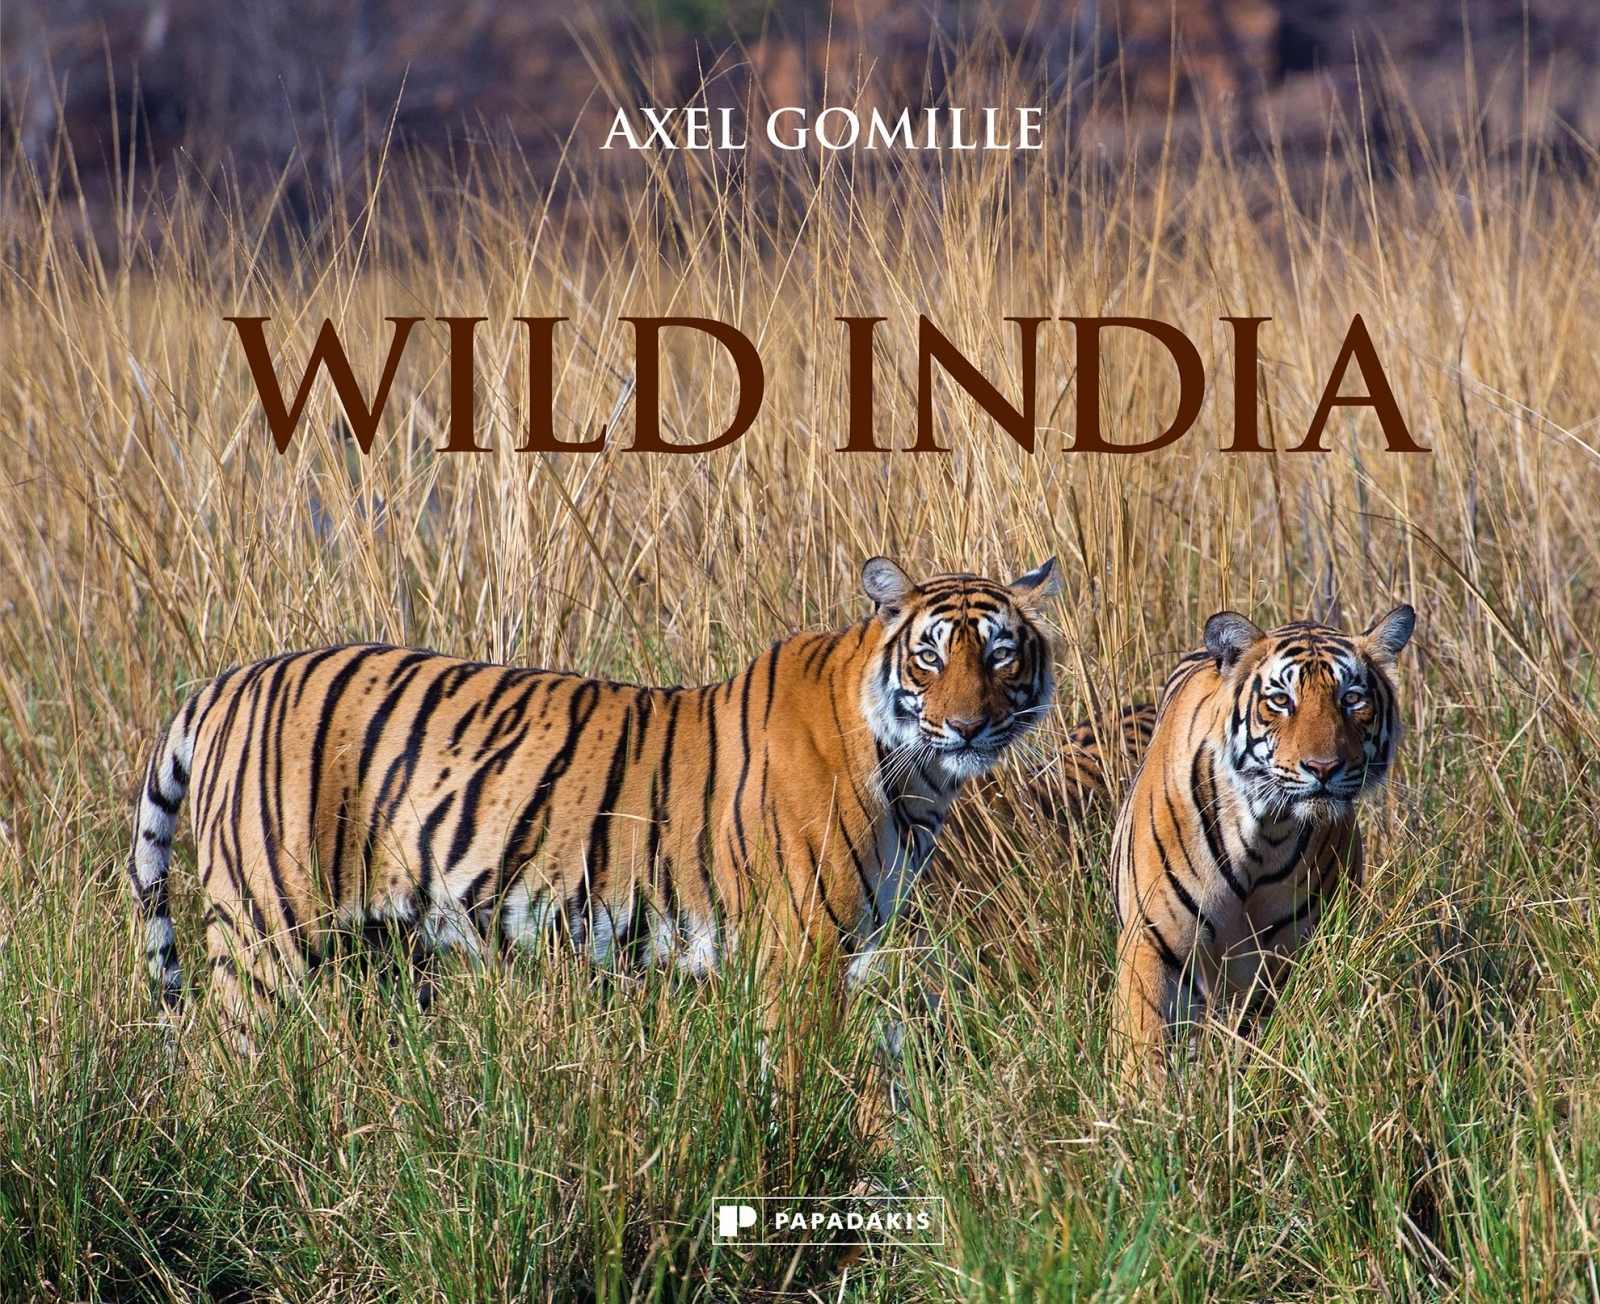 Wild India by Axel Gomille